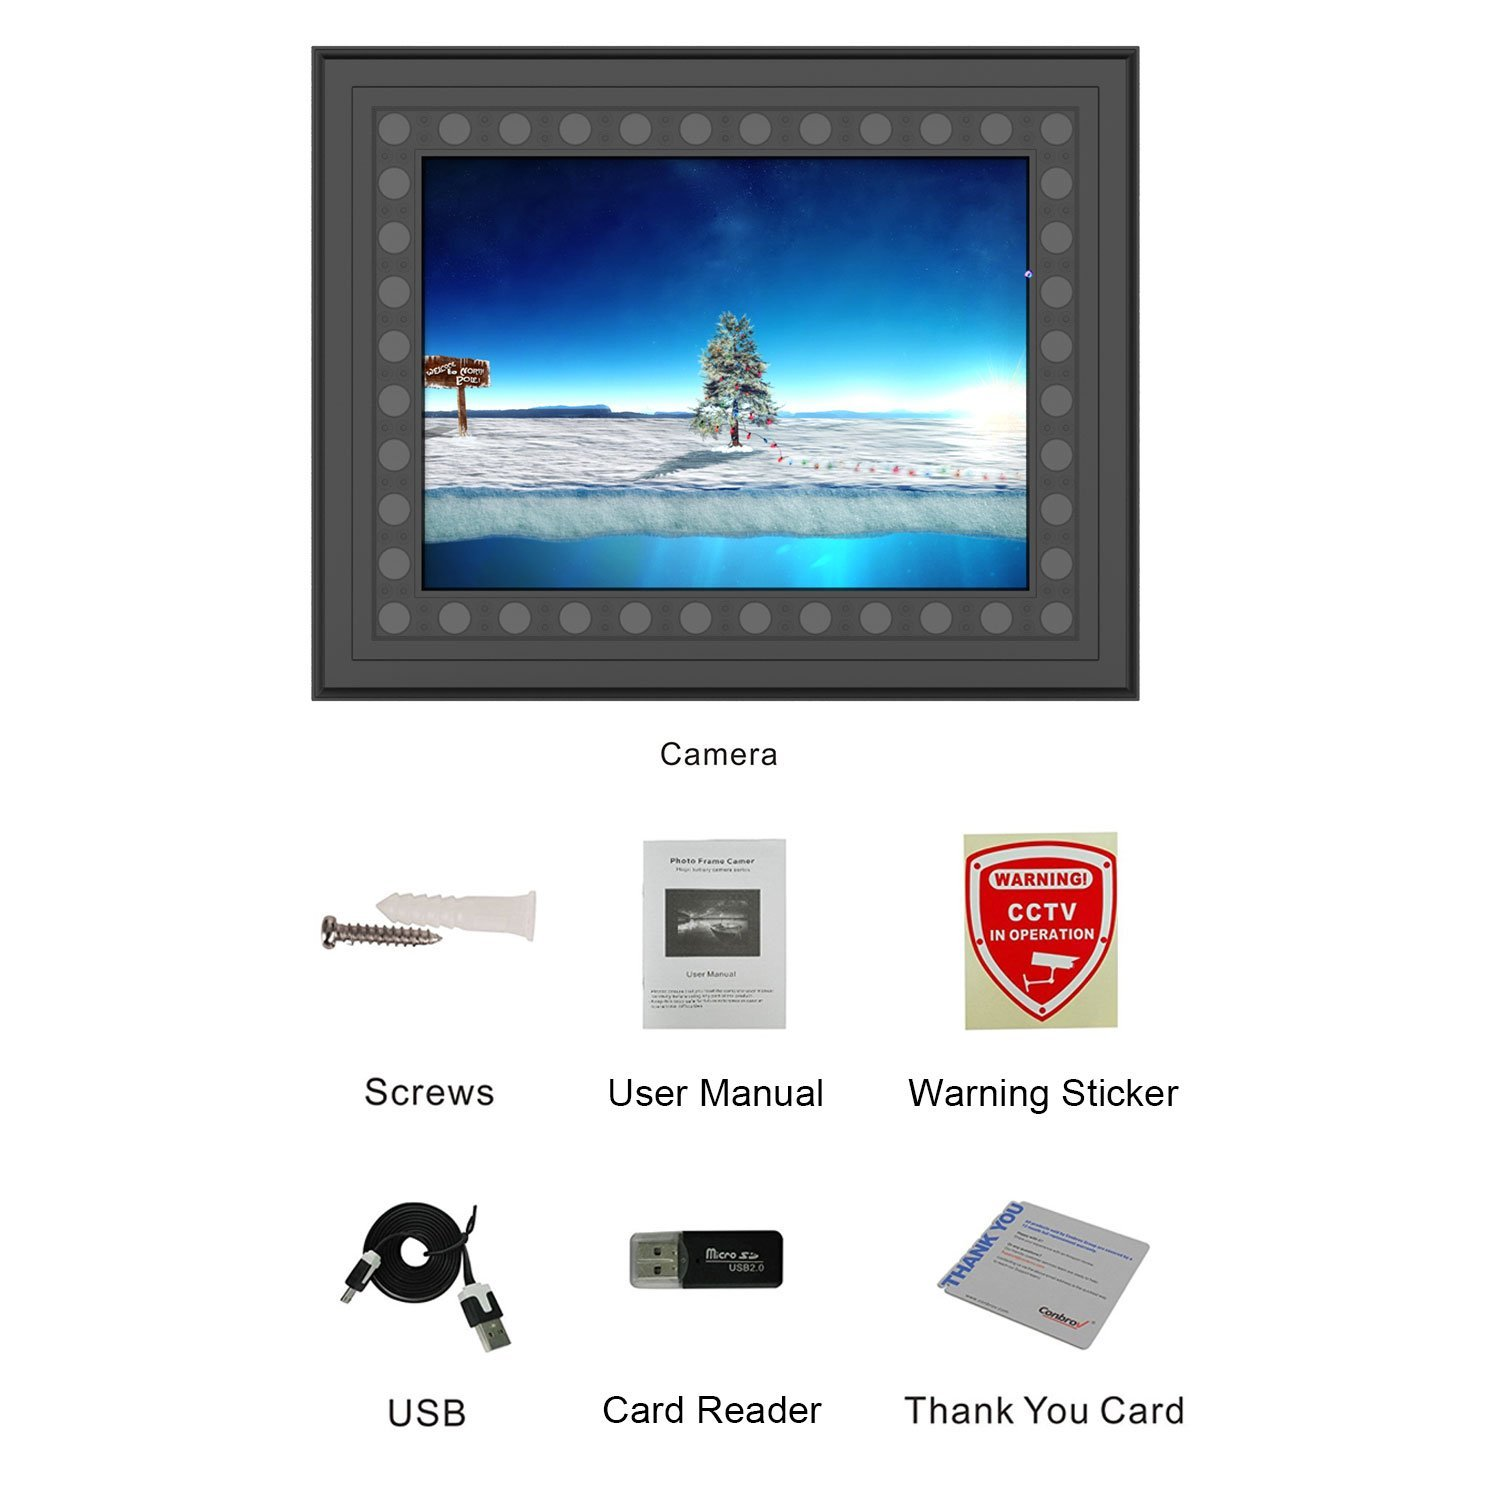 Hidden Spy Camera Photo Frame Conbrov T10a Hd 720p Home Security